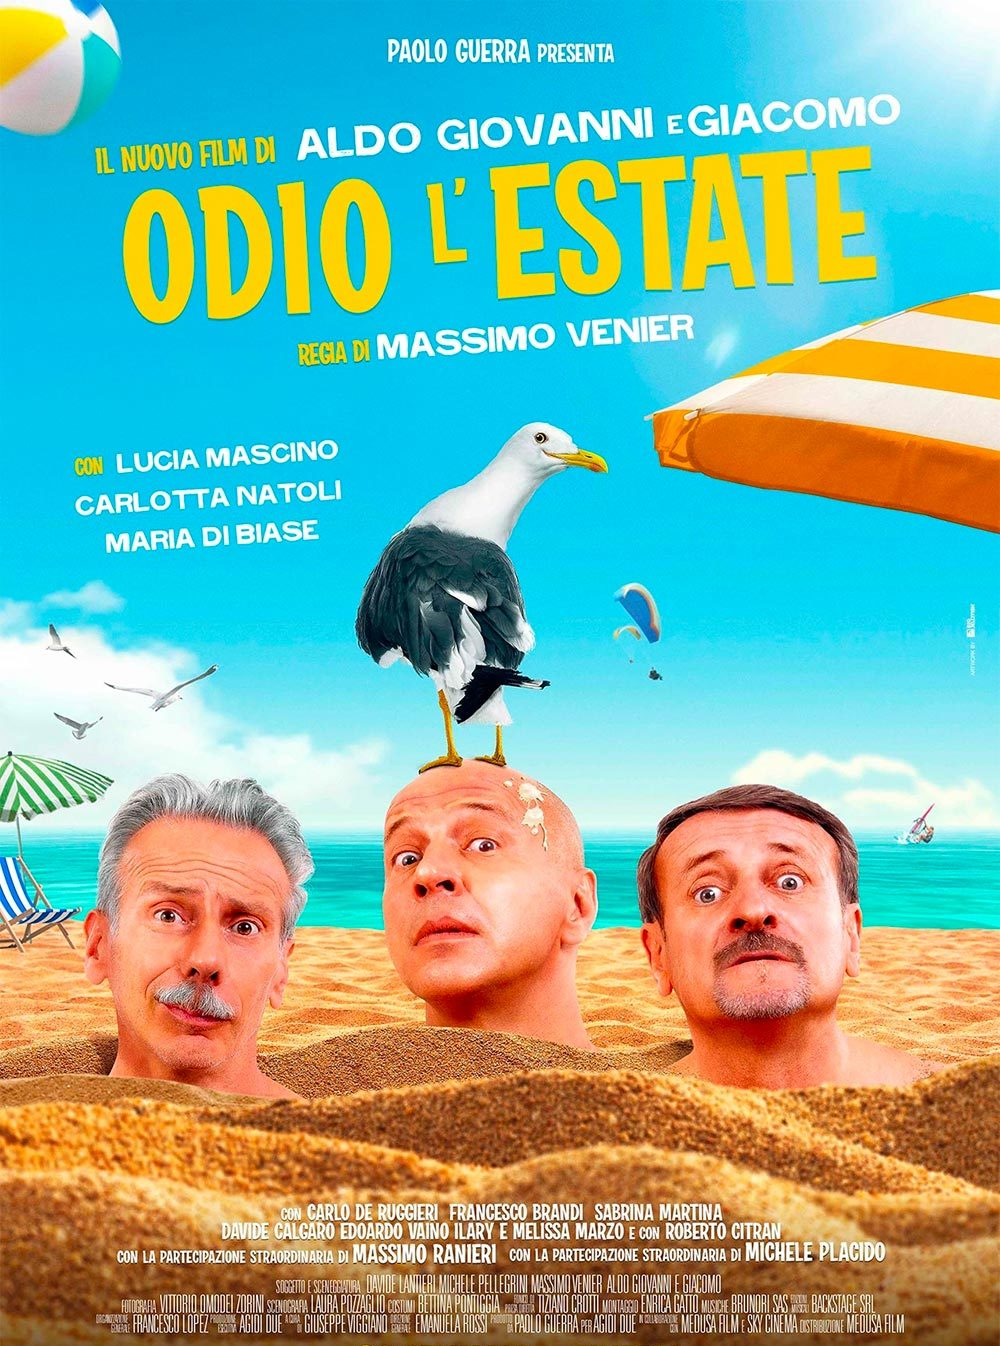 Odio-L-Estate-Cinema-Elios-Carmagnola-Cinema-Sotto-Le-Stelle-Cinema-Estivo